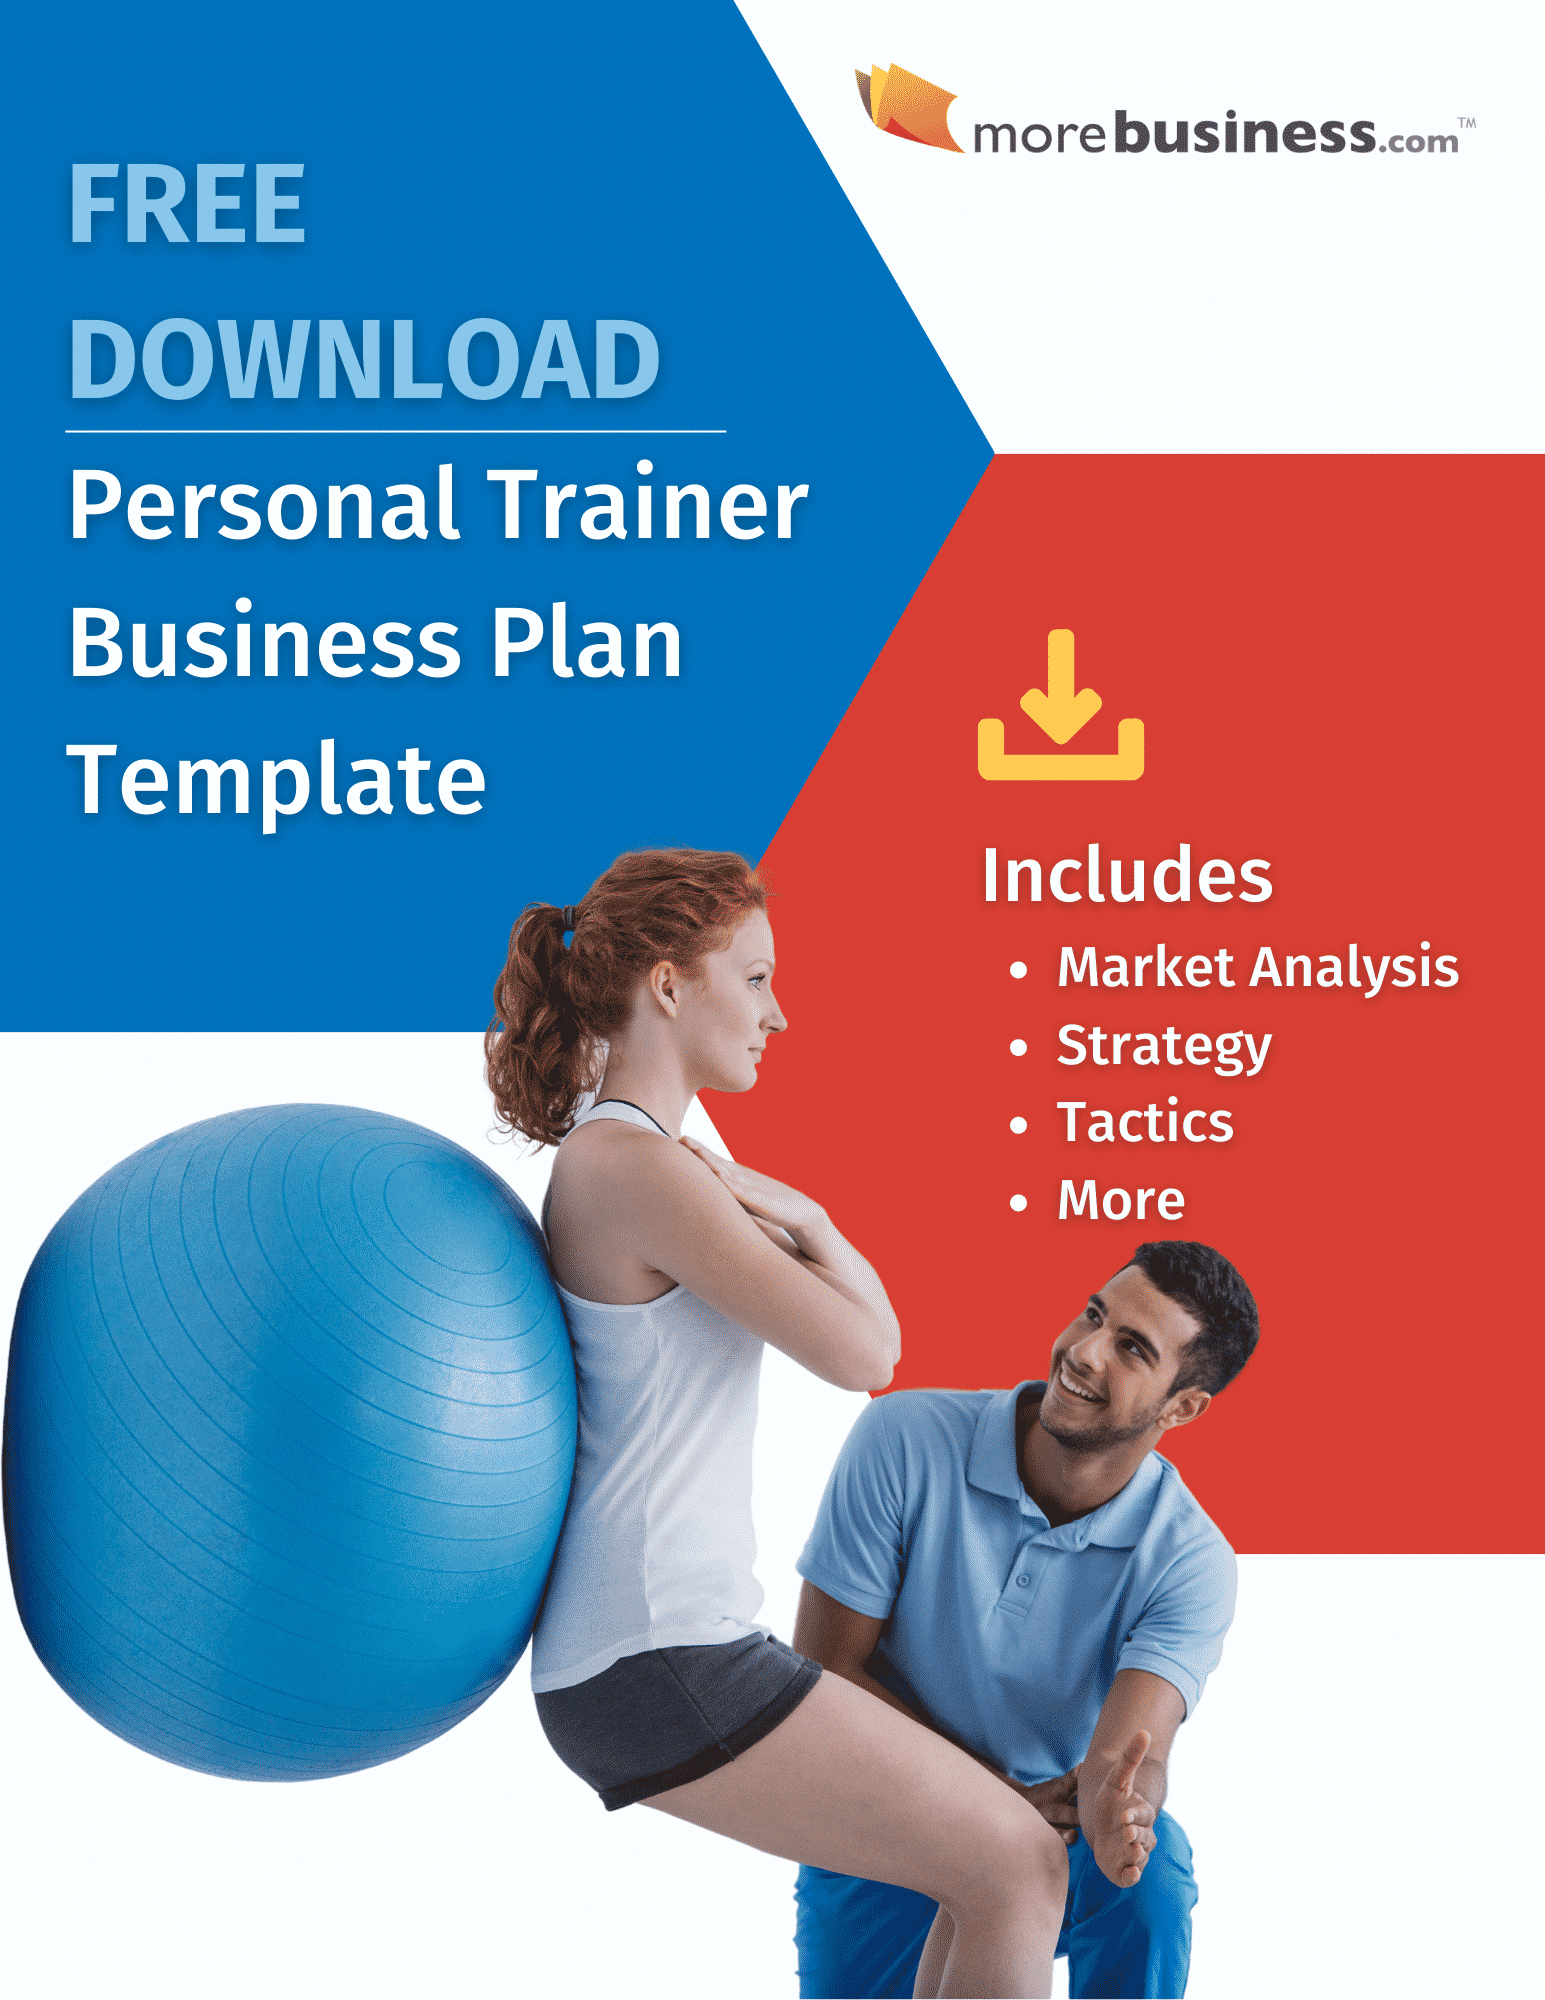 personal trainer business plan - free download